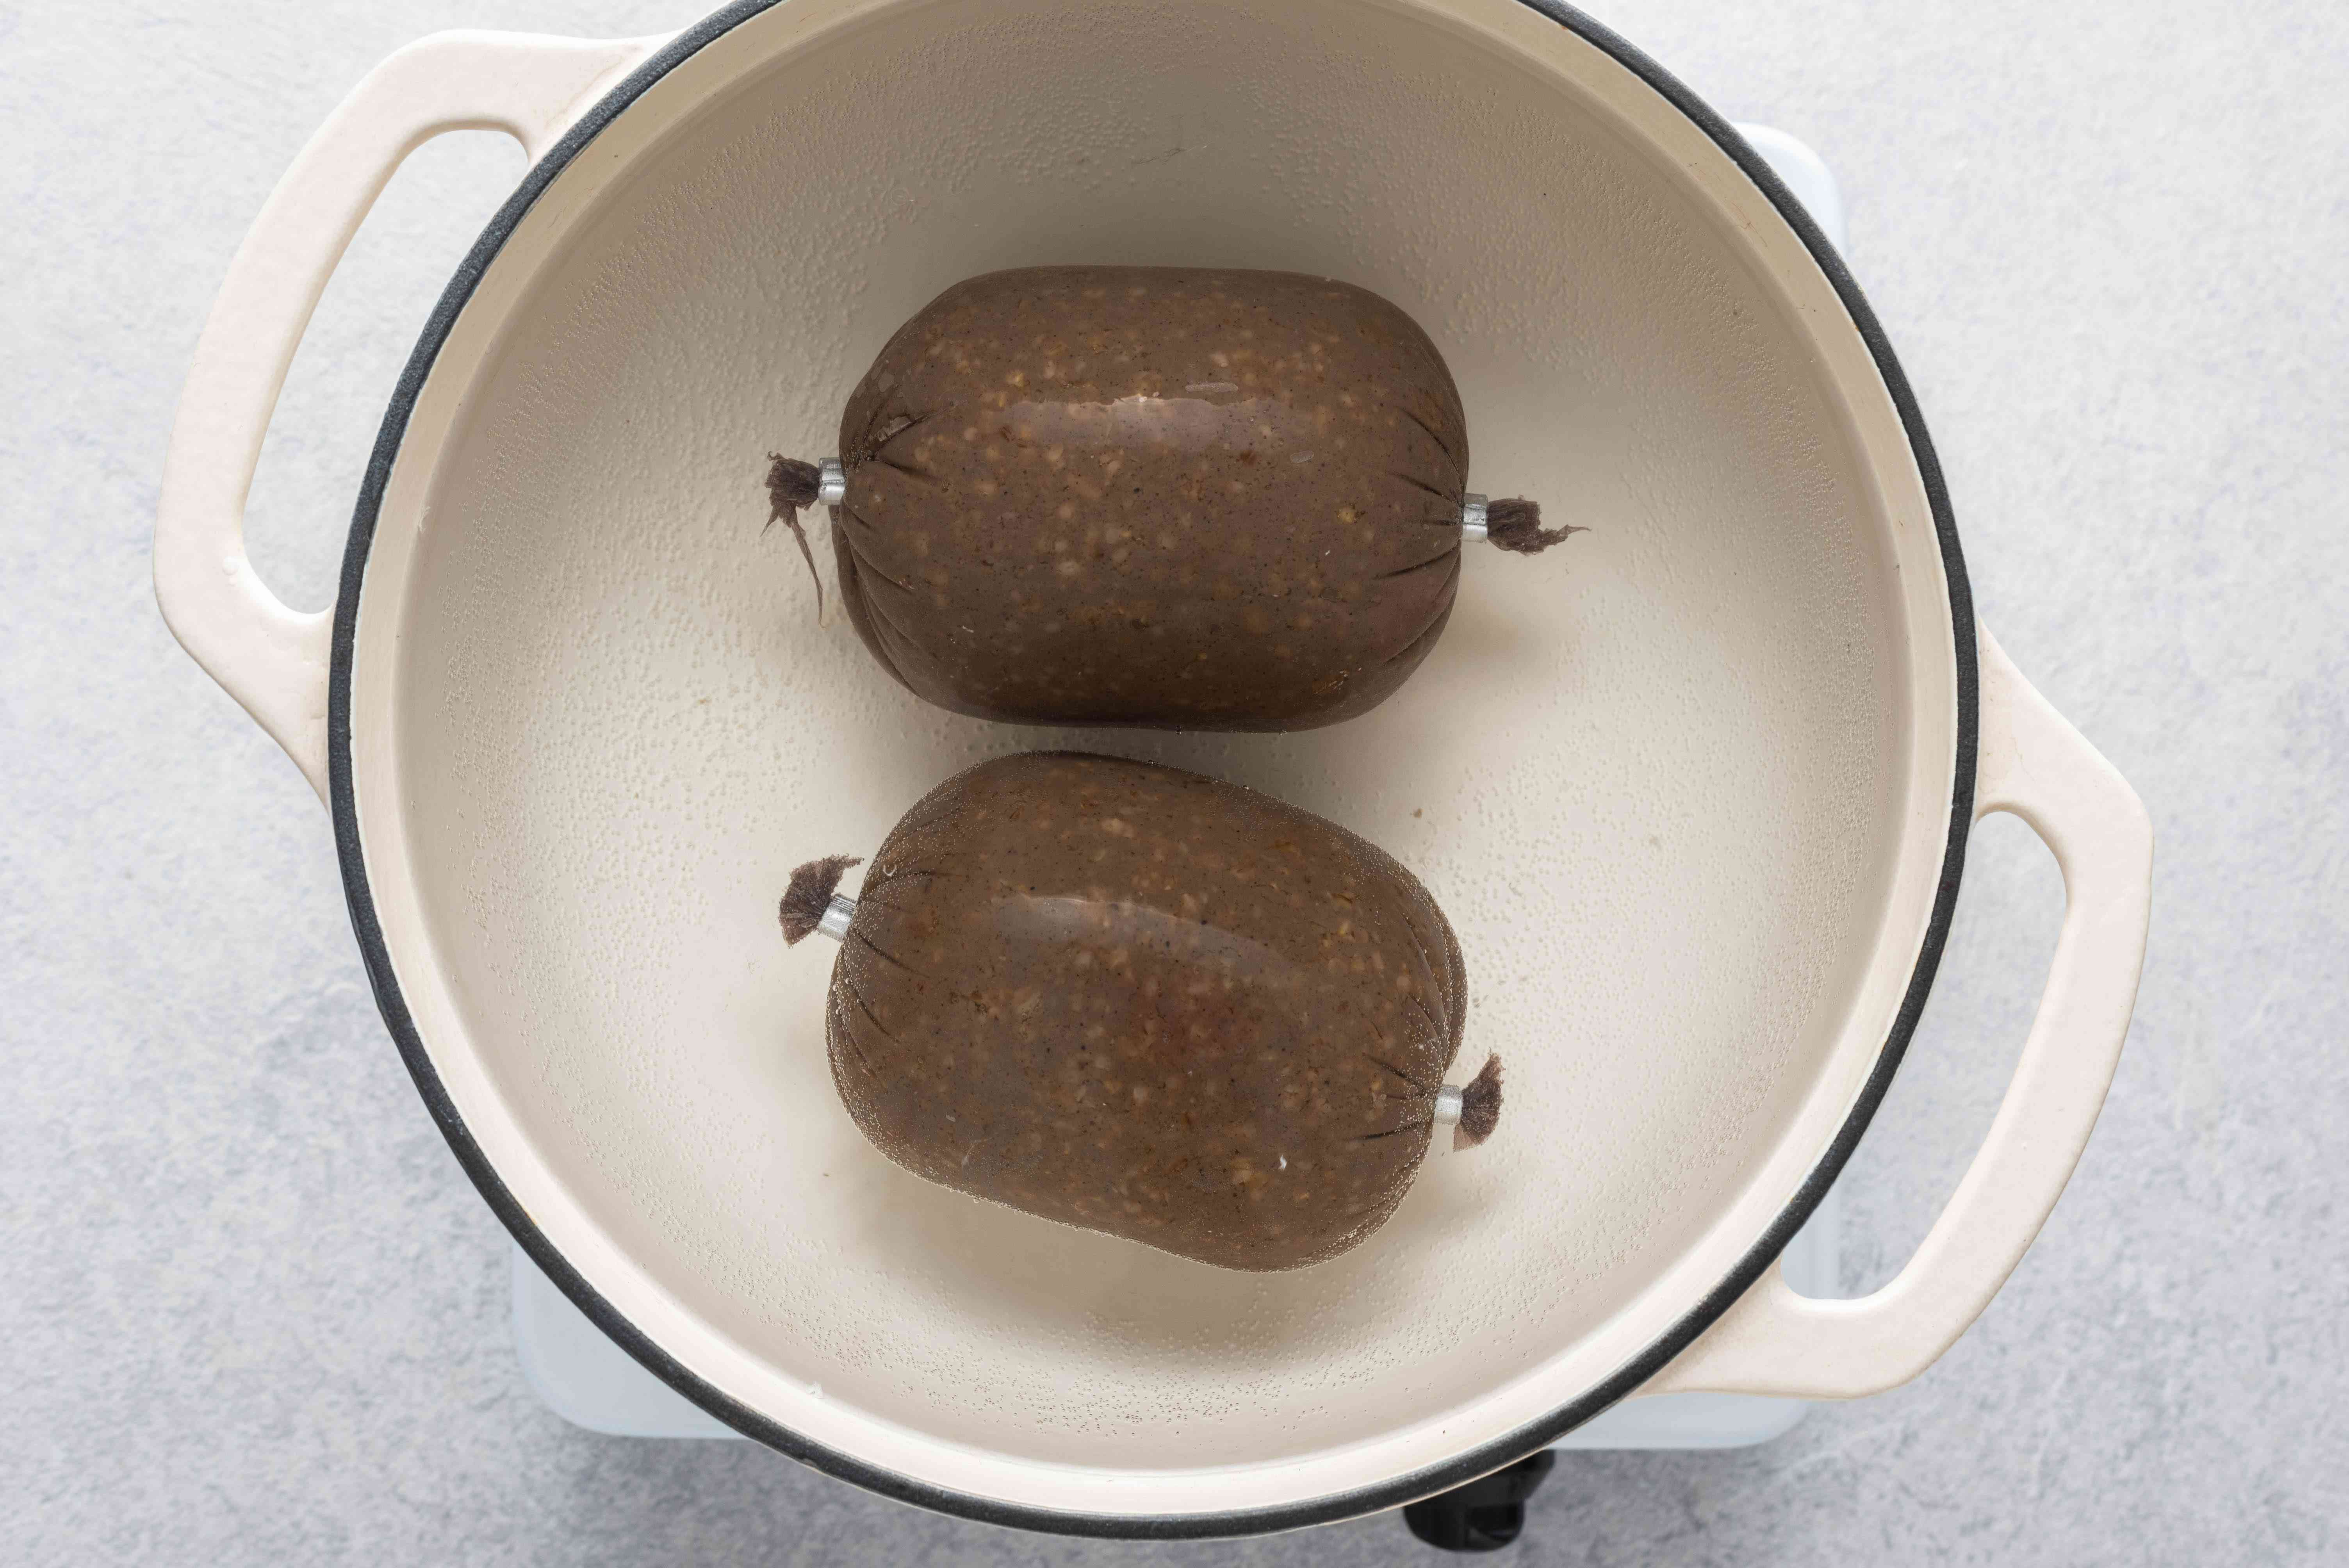 boiling the haggis in a pot with water